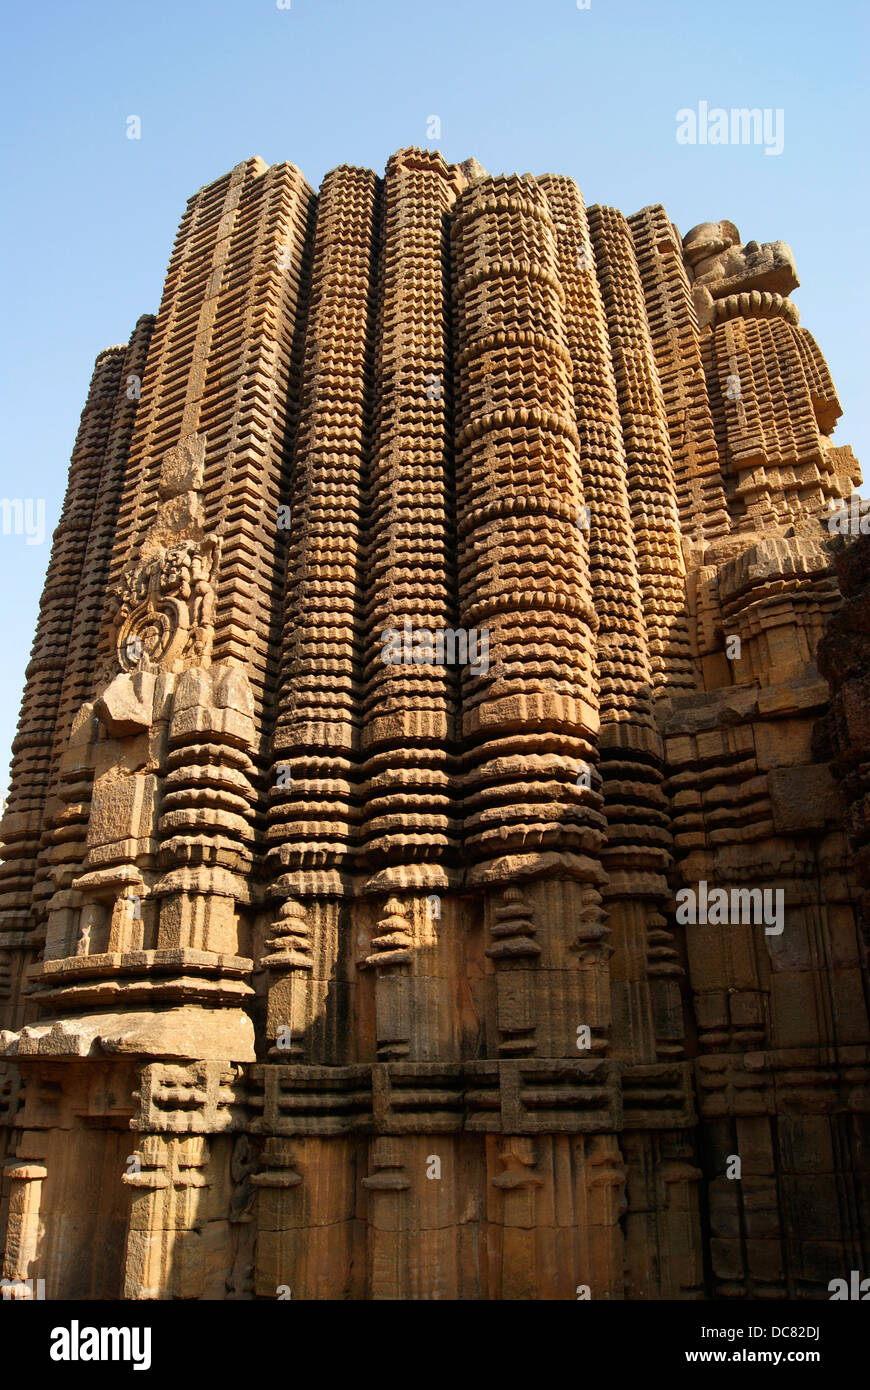 Typical Ancient Architecture of Papanasini Siva Temple at